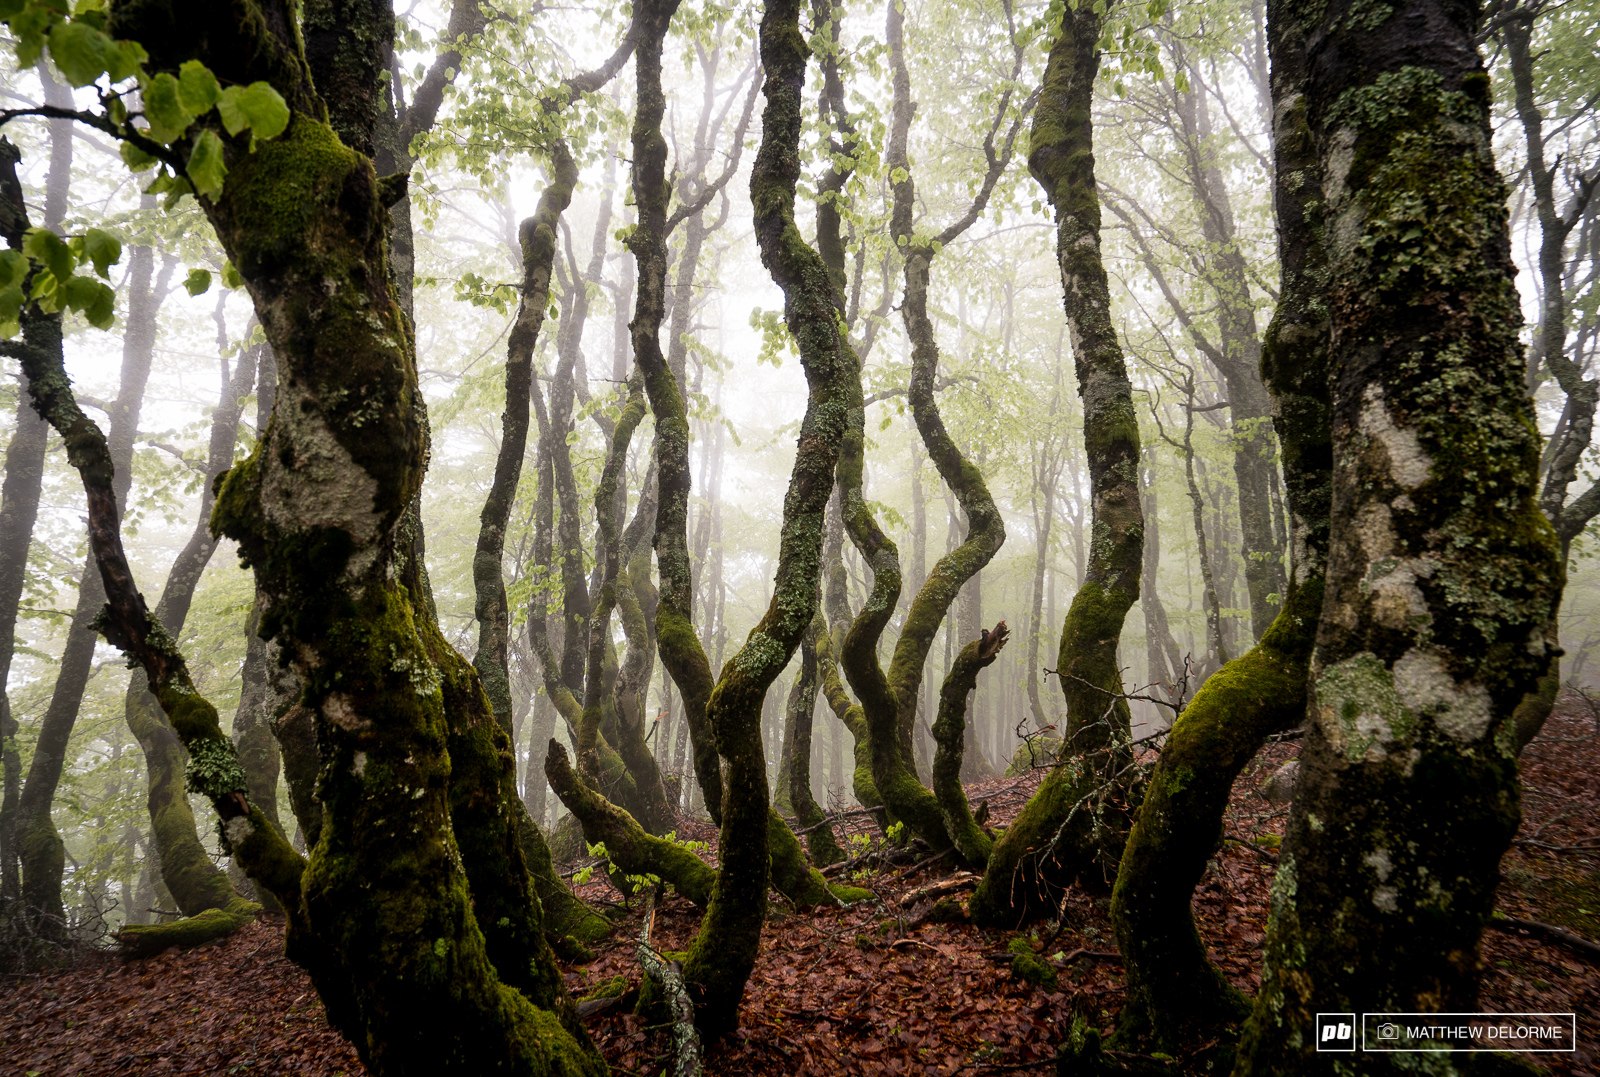 La Bresse has some beautiful woods. The twisted tress of the alpine are enchanting when they are cloaked in fog.